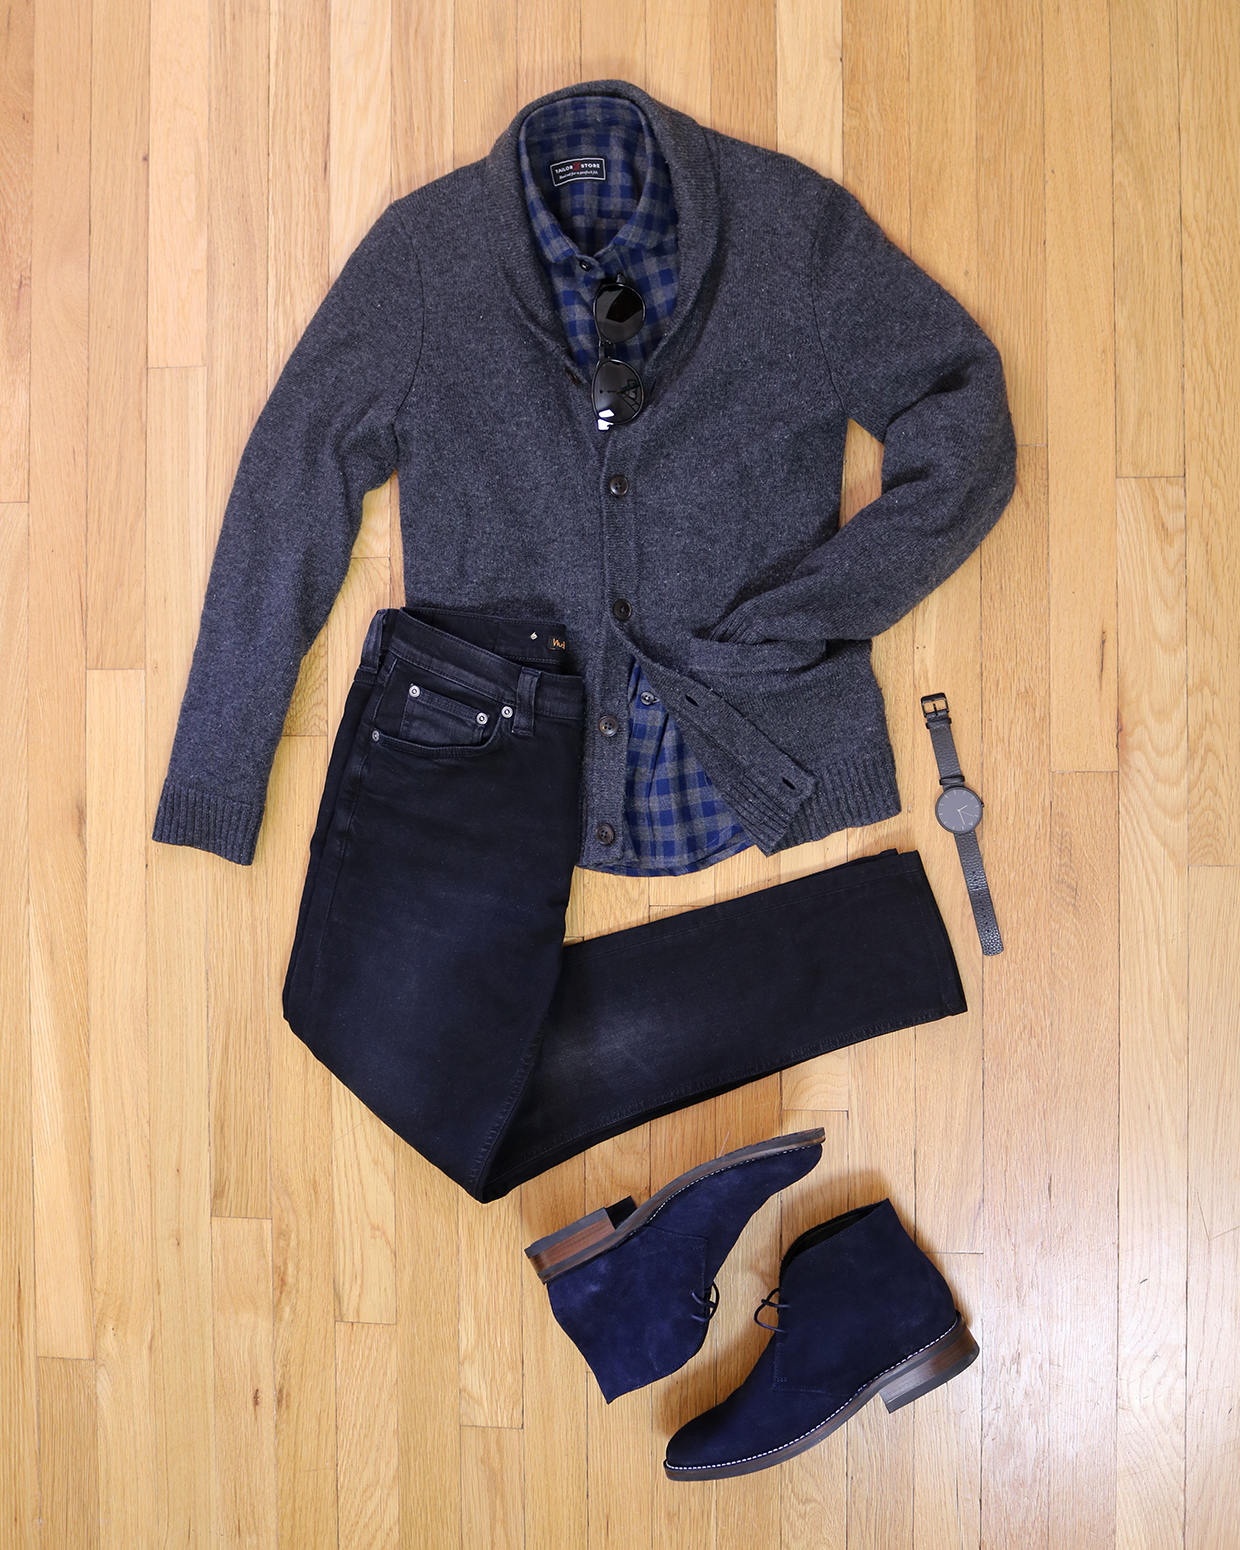 Smart casual chukka outfit